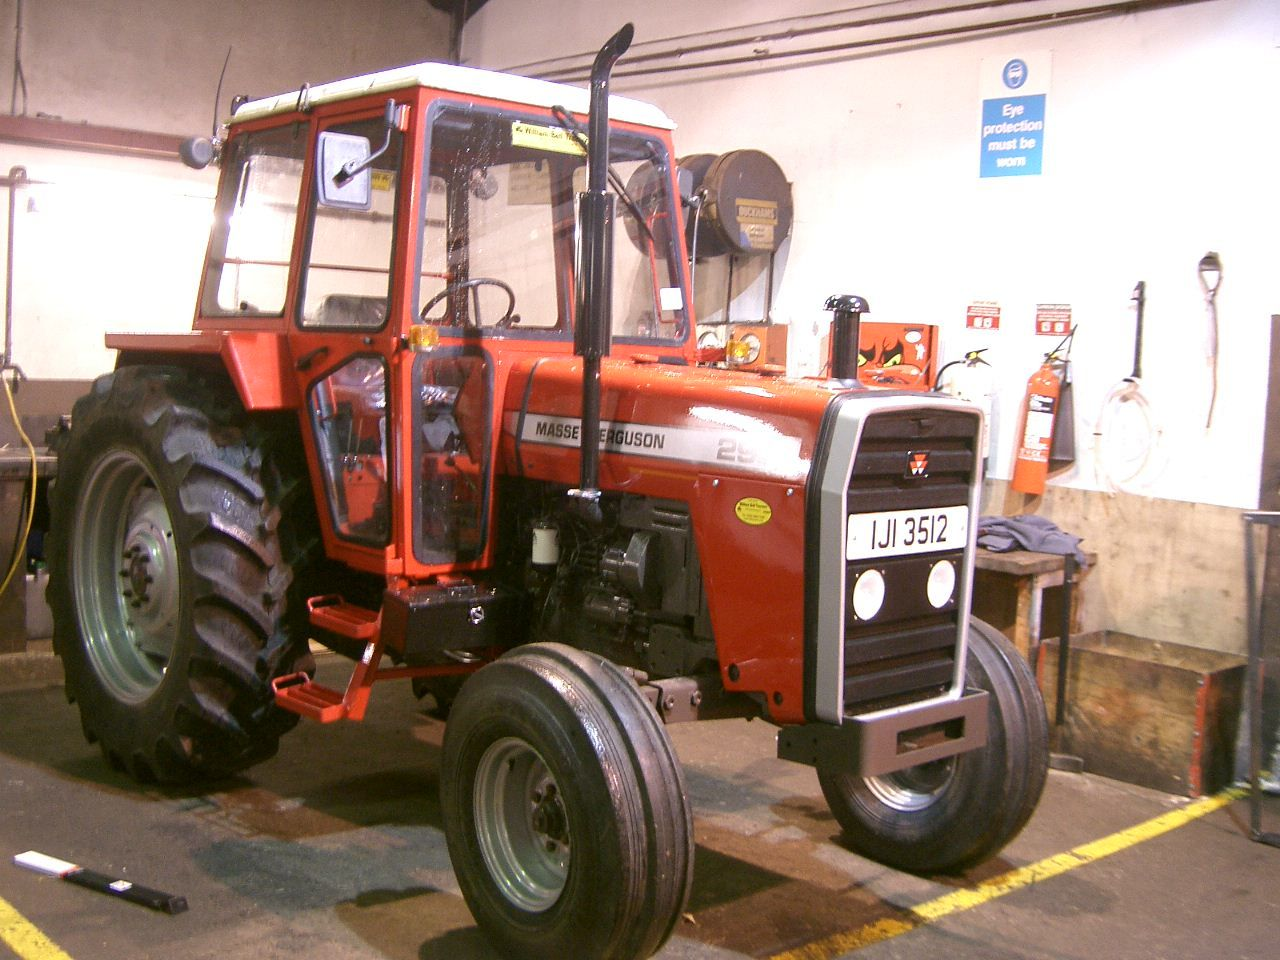 Massey Ferguson 290 Specs Photos Videos And More On Flipacars Tractors Massey Ferguson Massey Ferguson Tractors